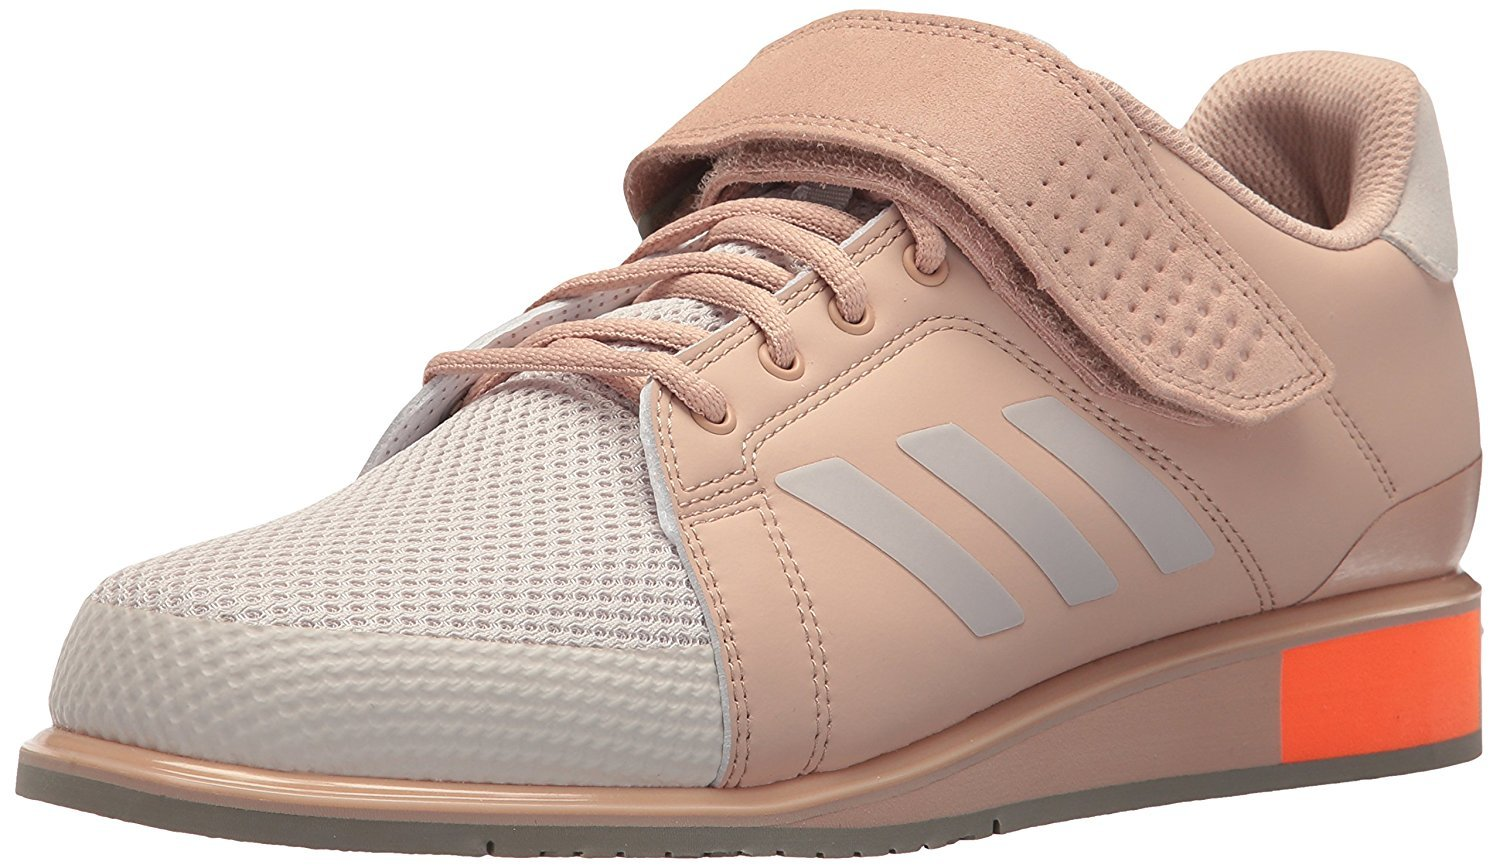 adidas Men's Power Perfect III. Cross Trainer Chalk ash Pearl, 16 M US by adidas